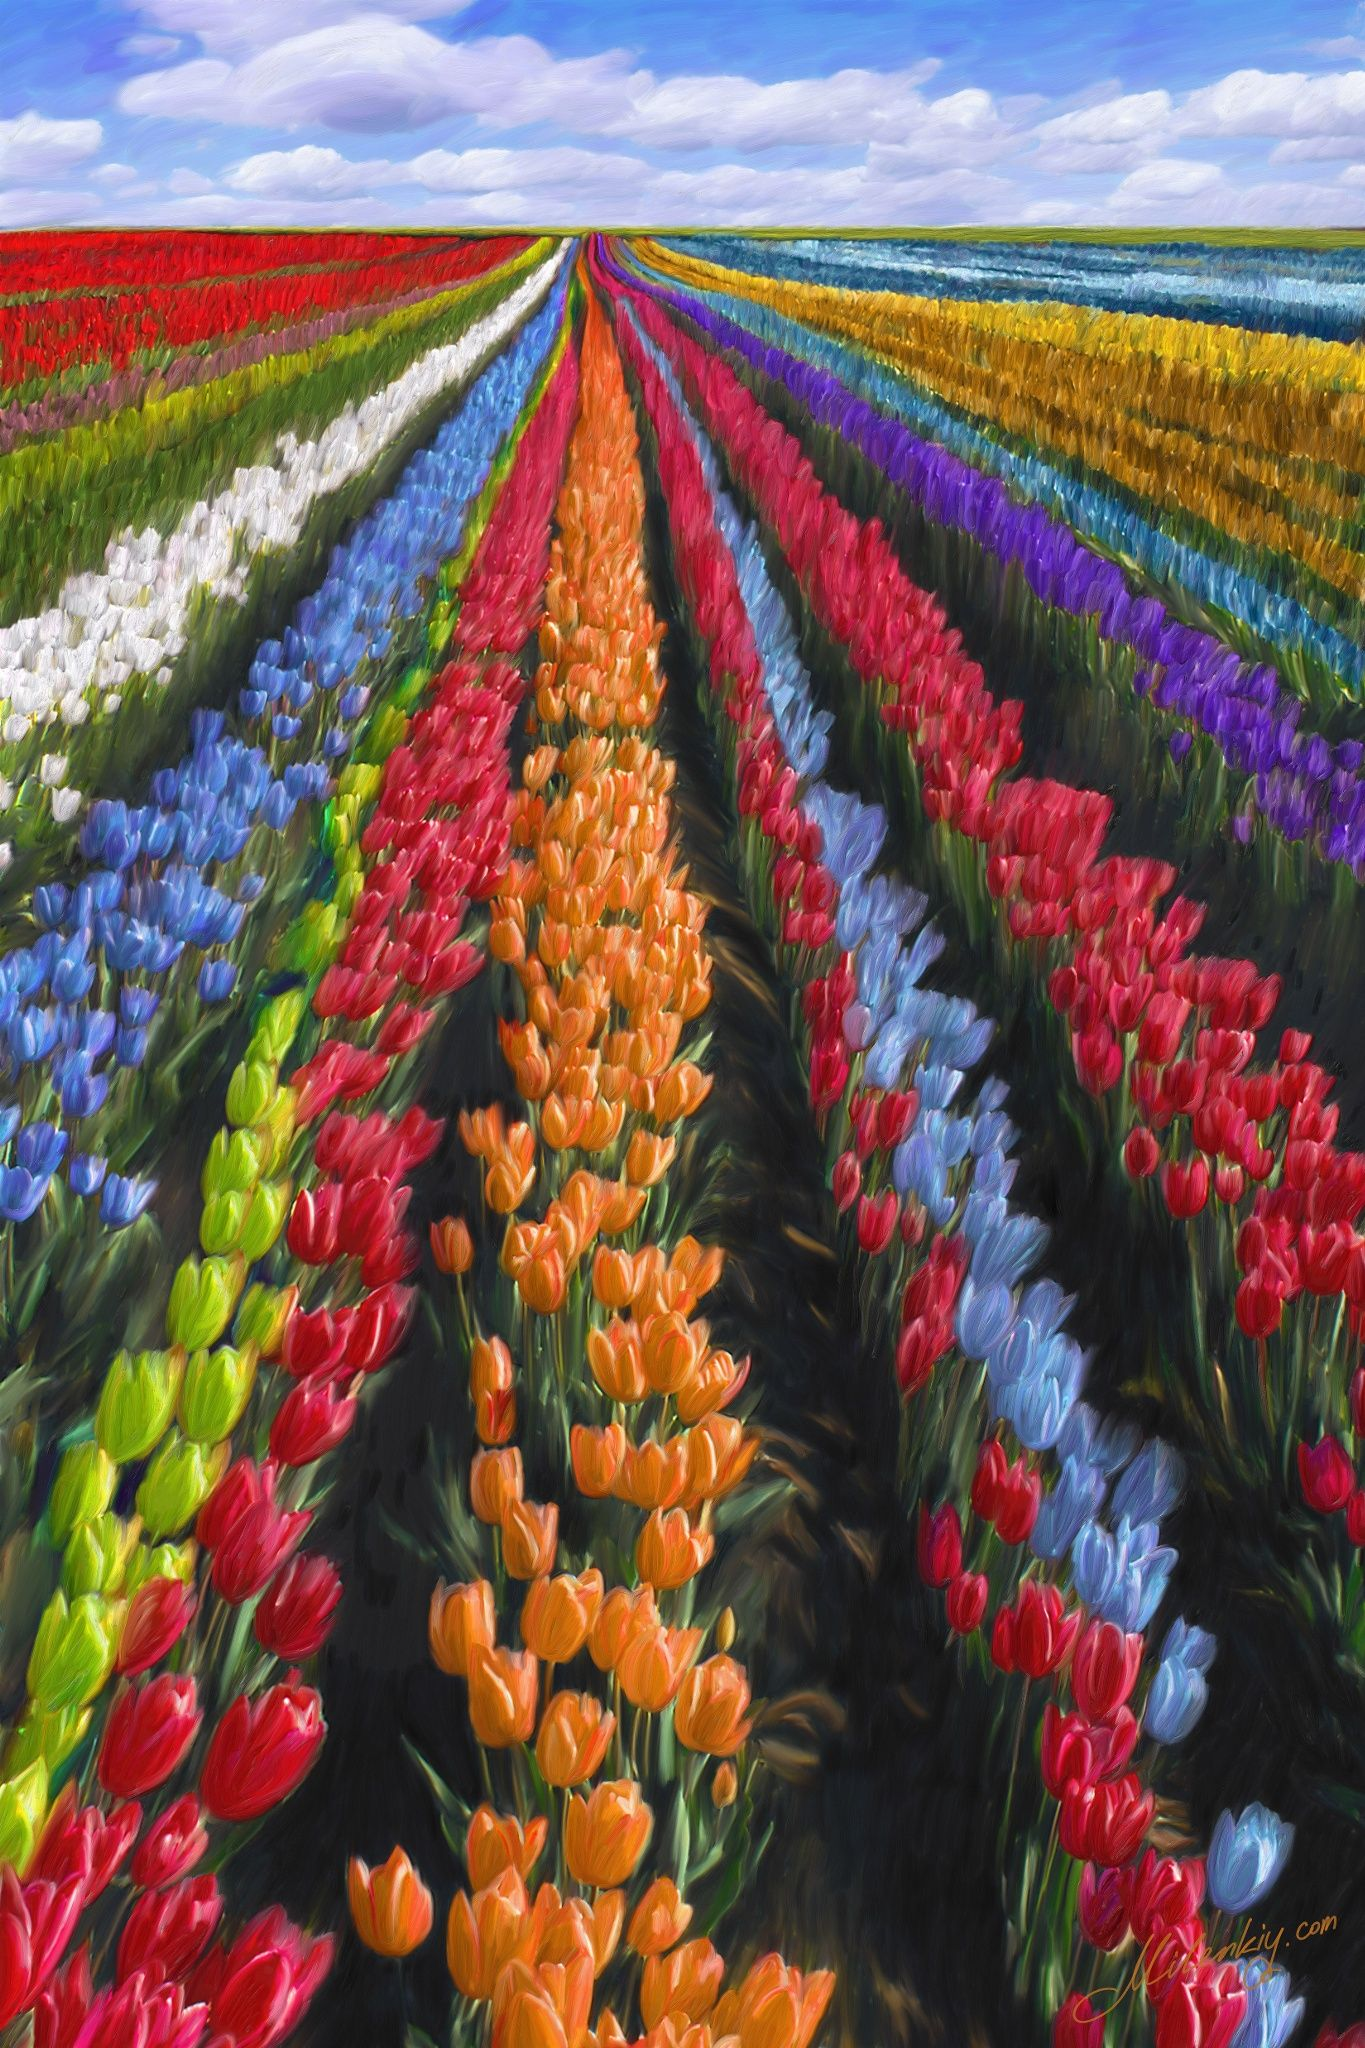 Holland Tulip Fields. Stripes of color Wanderlust with UD @UrbanDecay @Peek.com Contest Entry | Perennials | Tulips, Tulip fields, Flowers